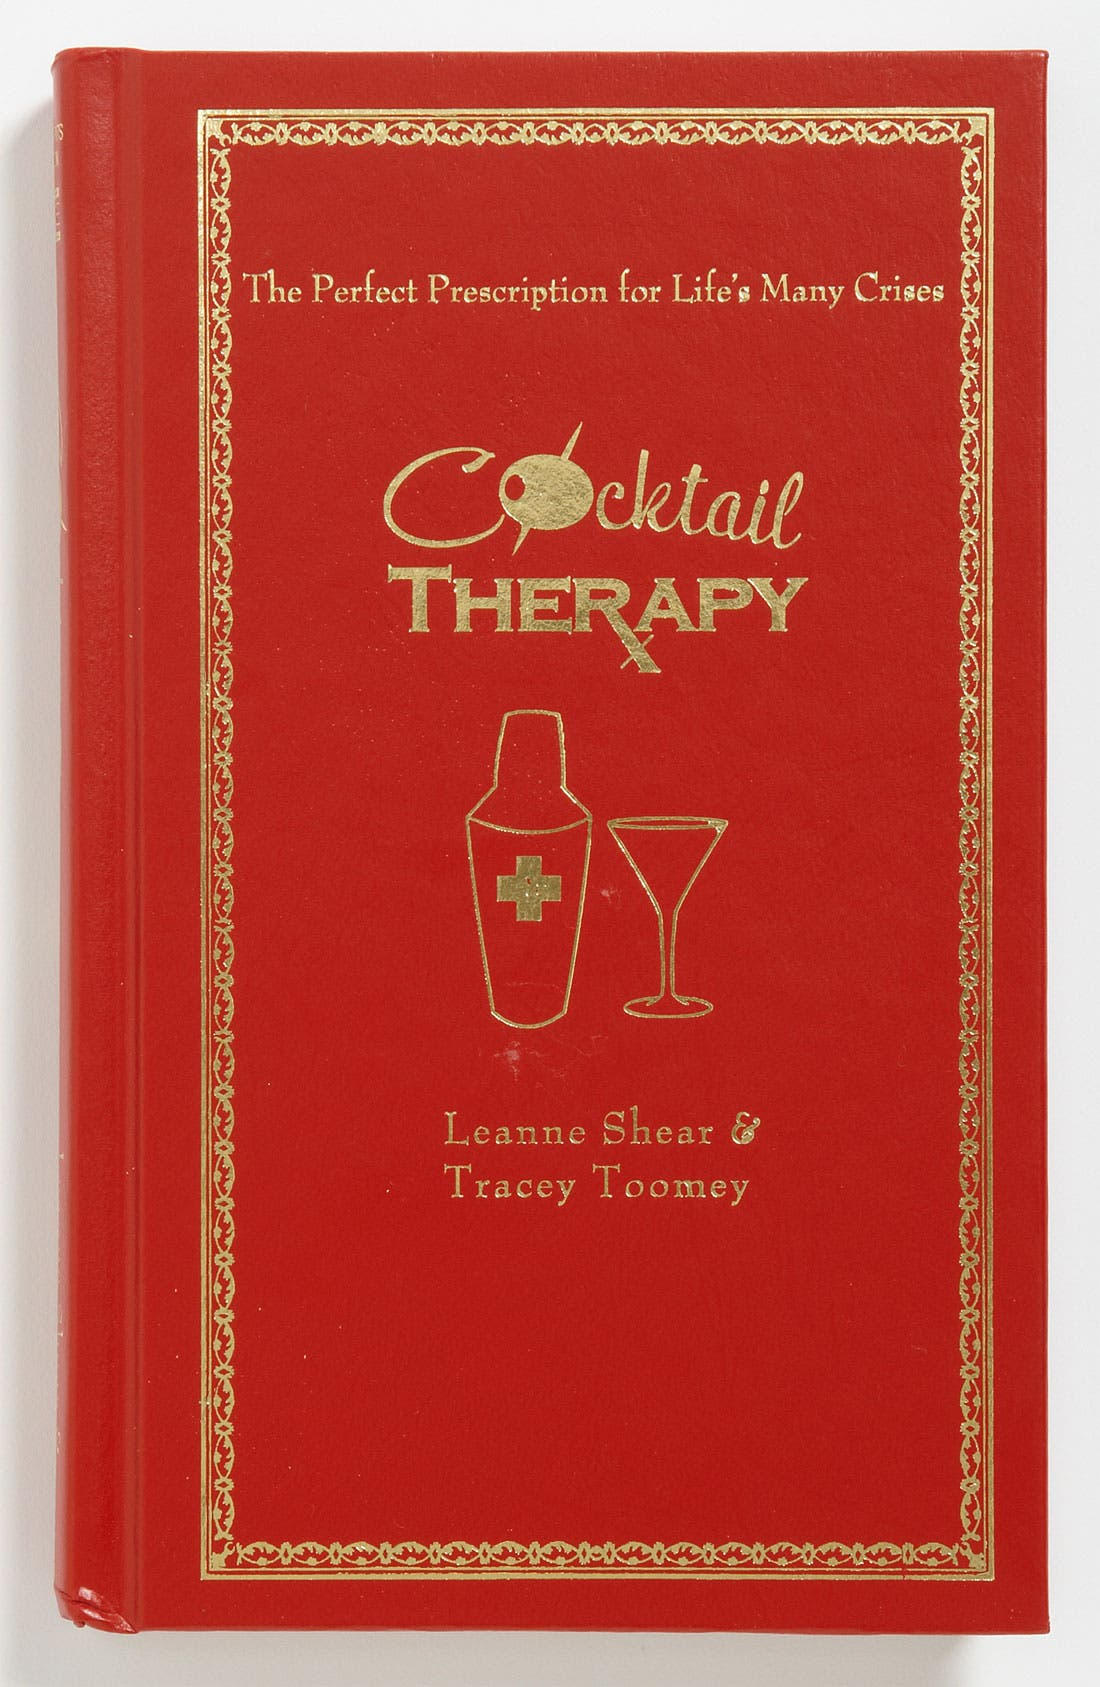 'Cocktail Therapy' Guide Book,                             Main thumbnail 1, color,                             960